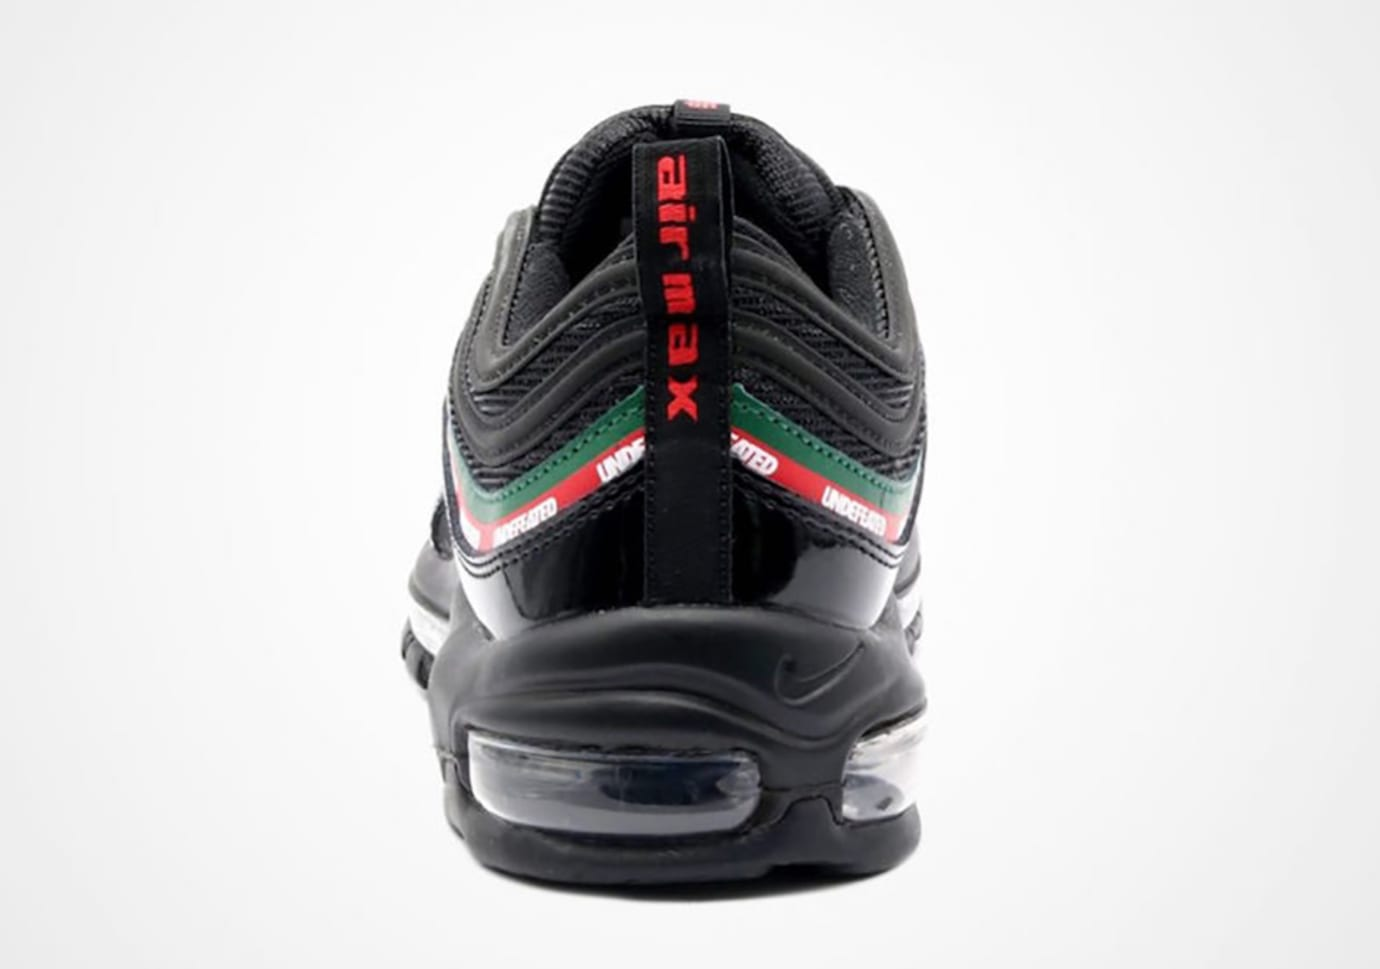 Undefeated Nike Air Max 97 AJ1986-001 Heel